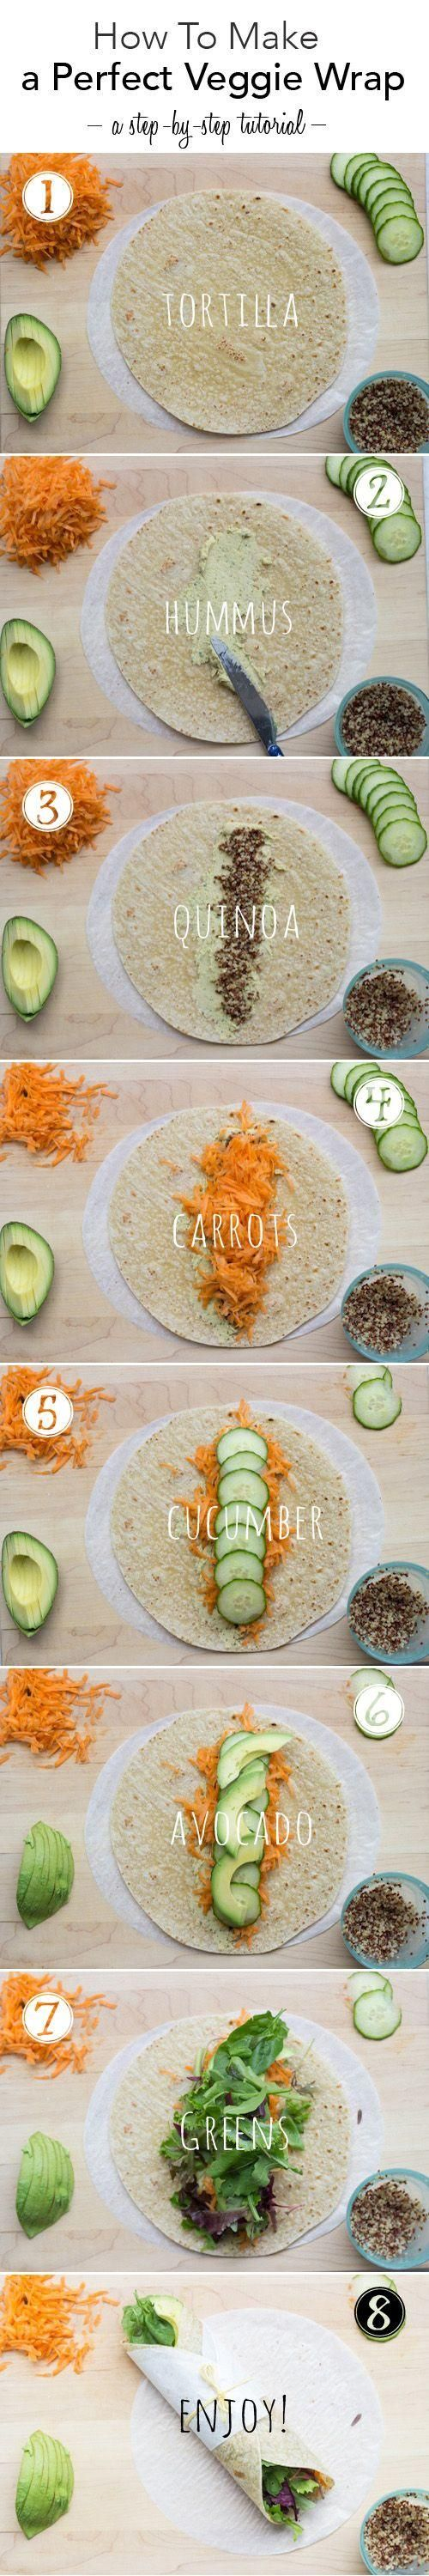 How to make the Perfect Veggie Wrap